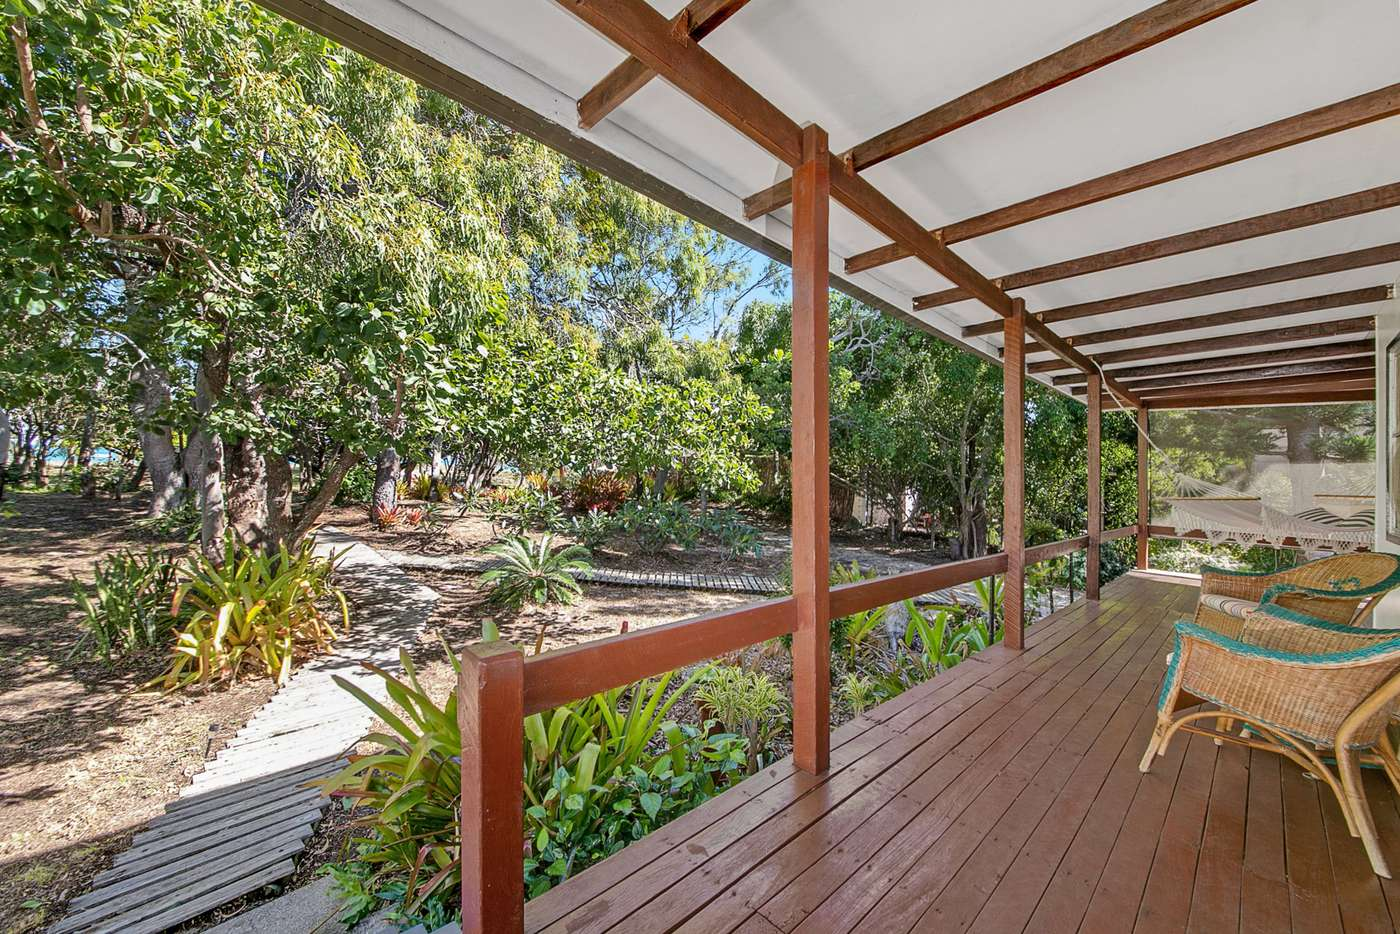 Main view of Homely house listing, 68 Esplanade, The Keppels QLD 4700